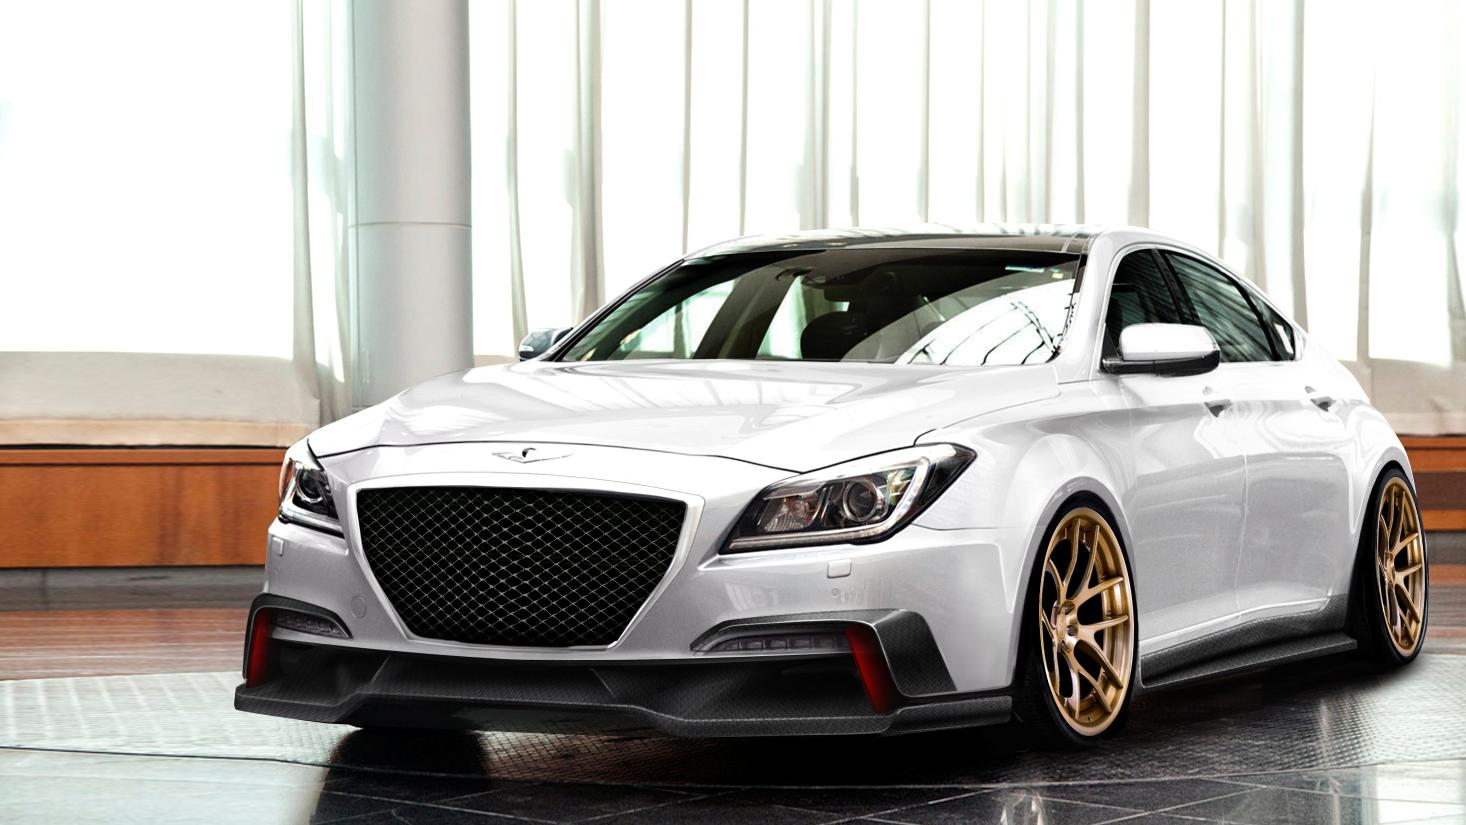 Genesis G80 2016 Meet Hyundai S Perception Of Luxury: ARK Performance Turns 2015 Hyundai Genesis Into Super SEMA